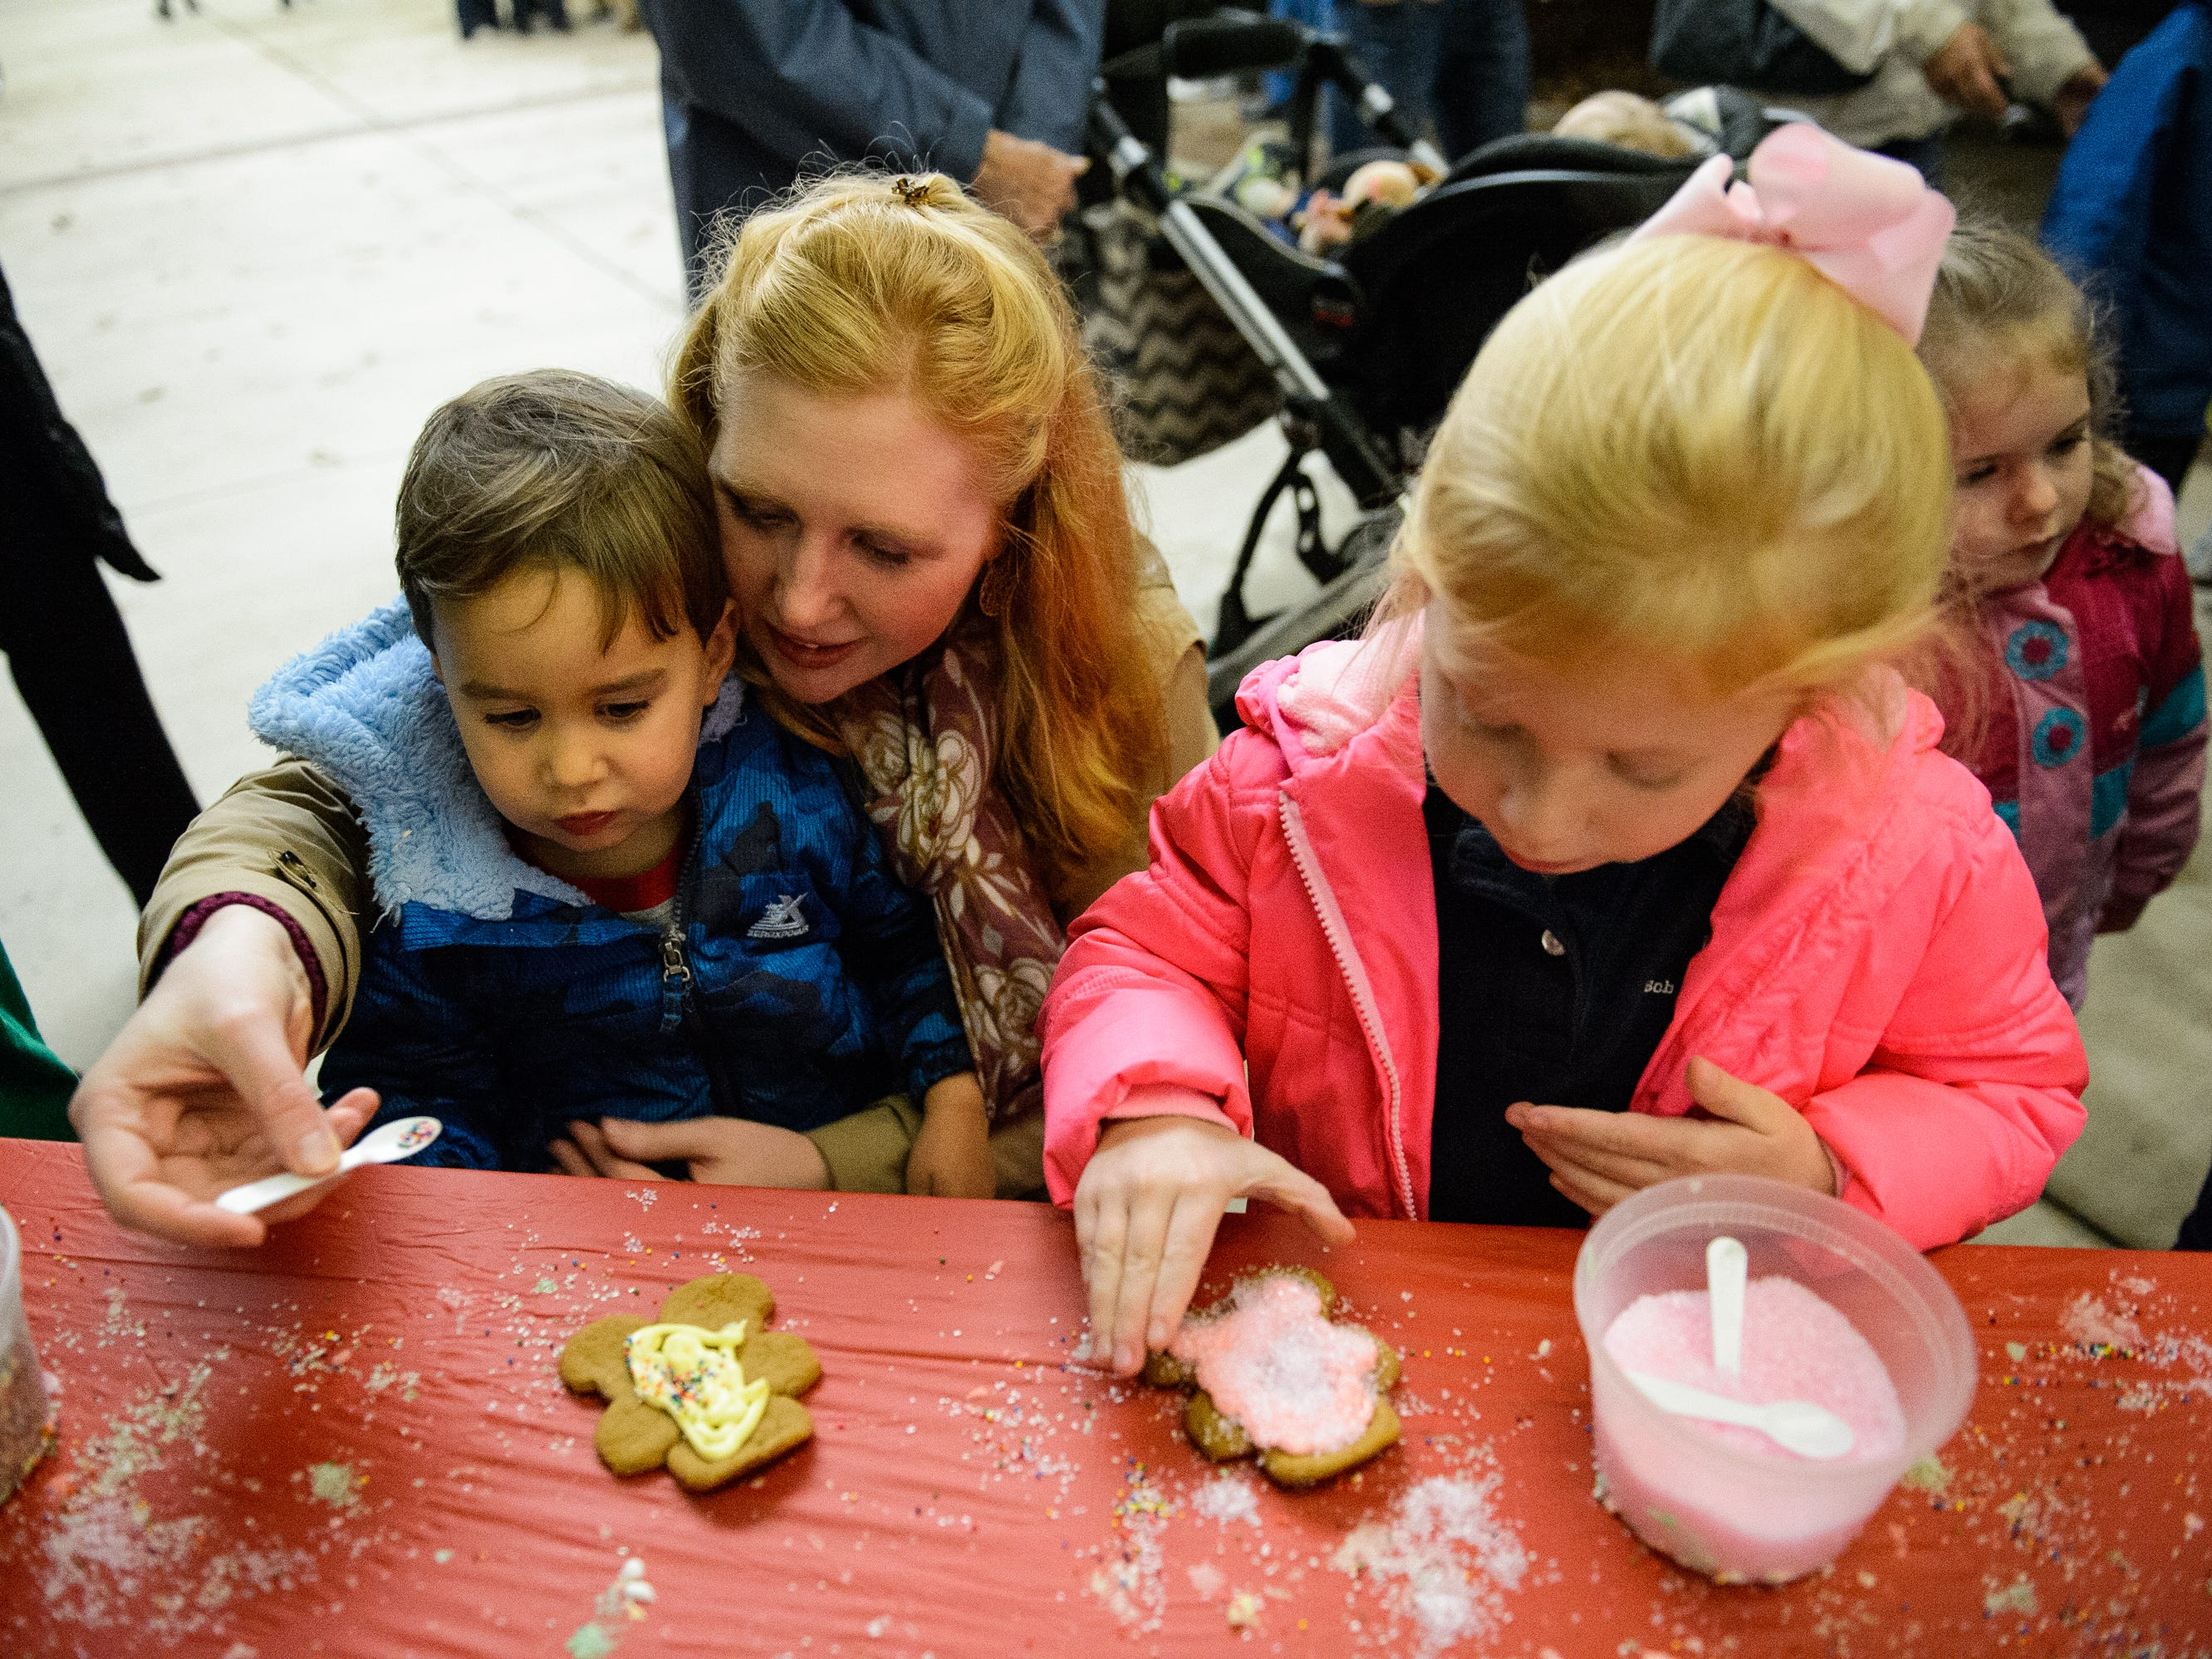 Kristin Villalba makes Christmas cookies with her children Sabrina, 4, and Matias, 2, at Bob Jones University's annual Christmas Celebration on Friday, Nov. 30, 2018.